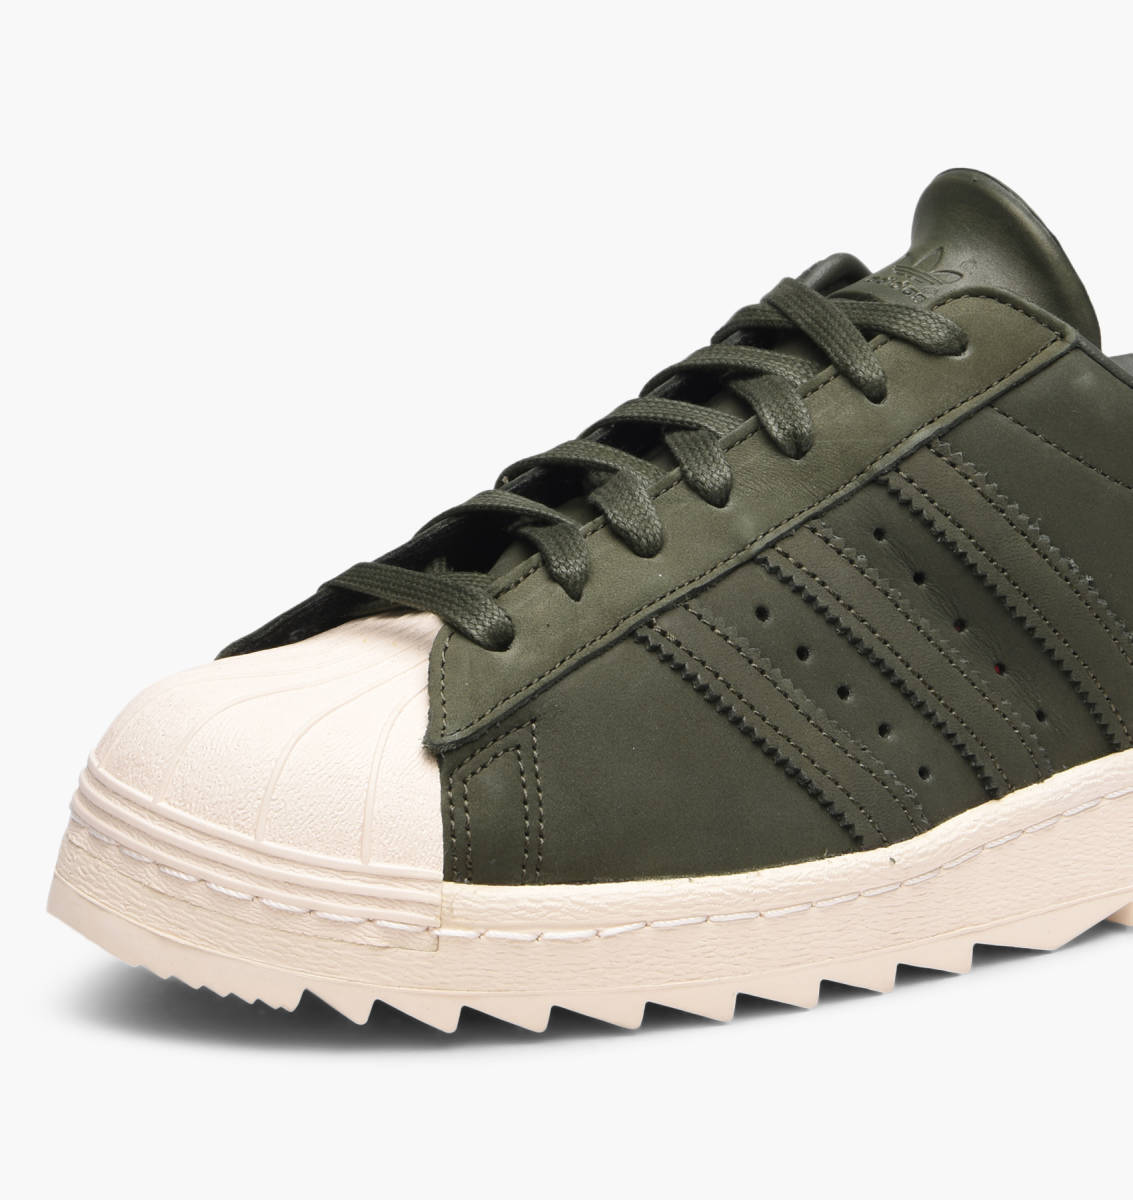 adidas originals superstar 80s tr night cargo bz0567. Black Bedroom Furniture Sets. Home Design Ideas